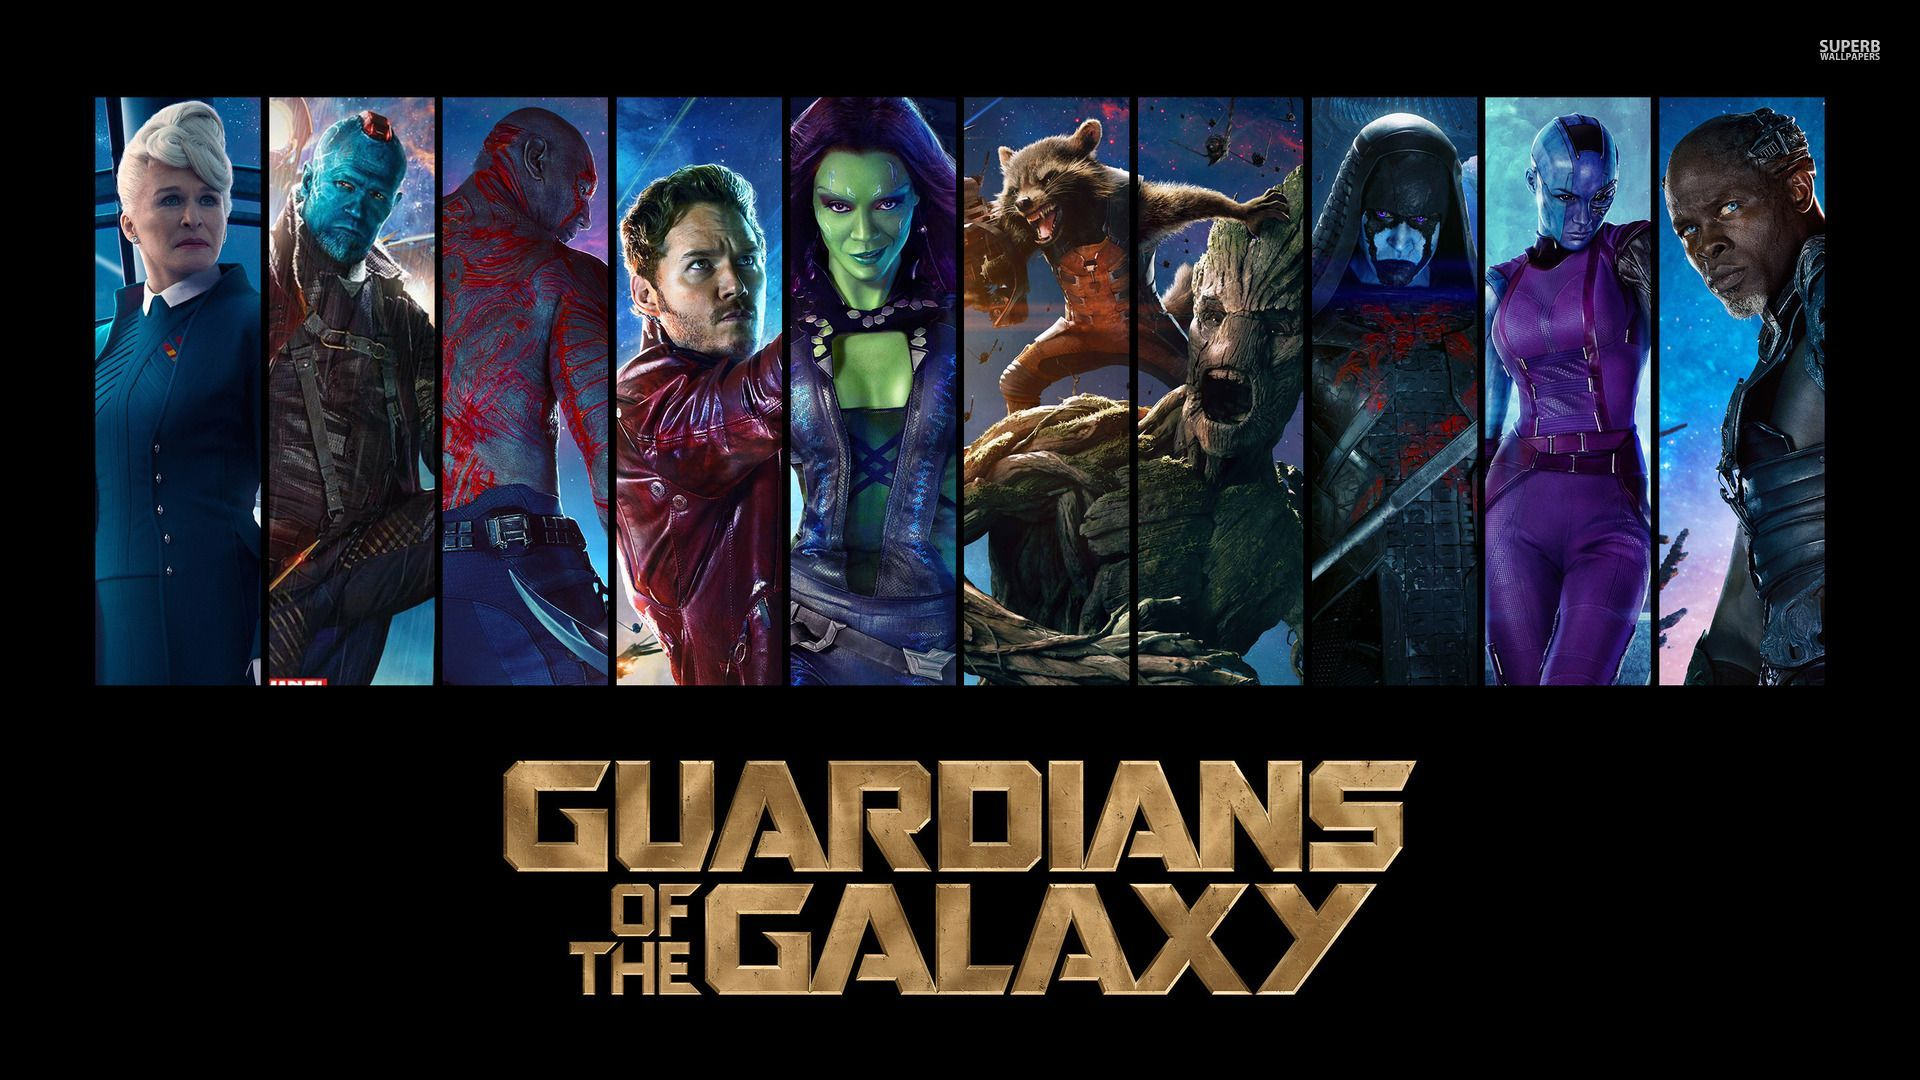 The Guardians Of The Galaxy Wallpapers Wallpaper Galaxy Movie Guardians Of The Galaxy Guardians Of The Galaxy Vol 2